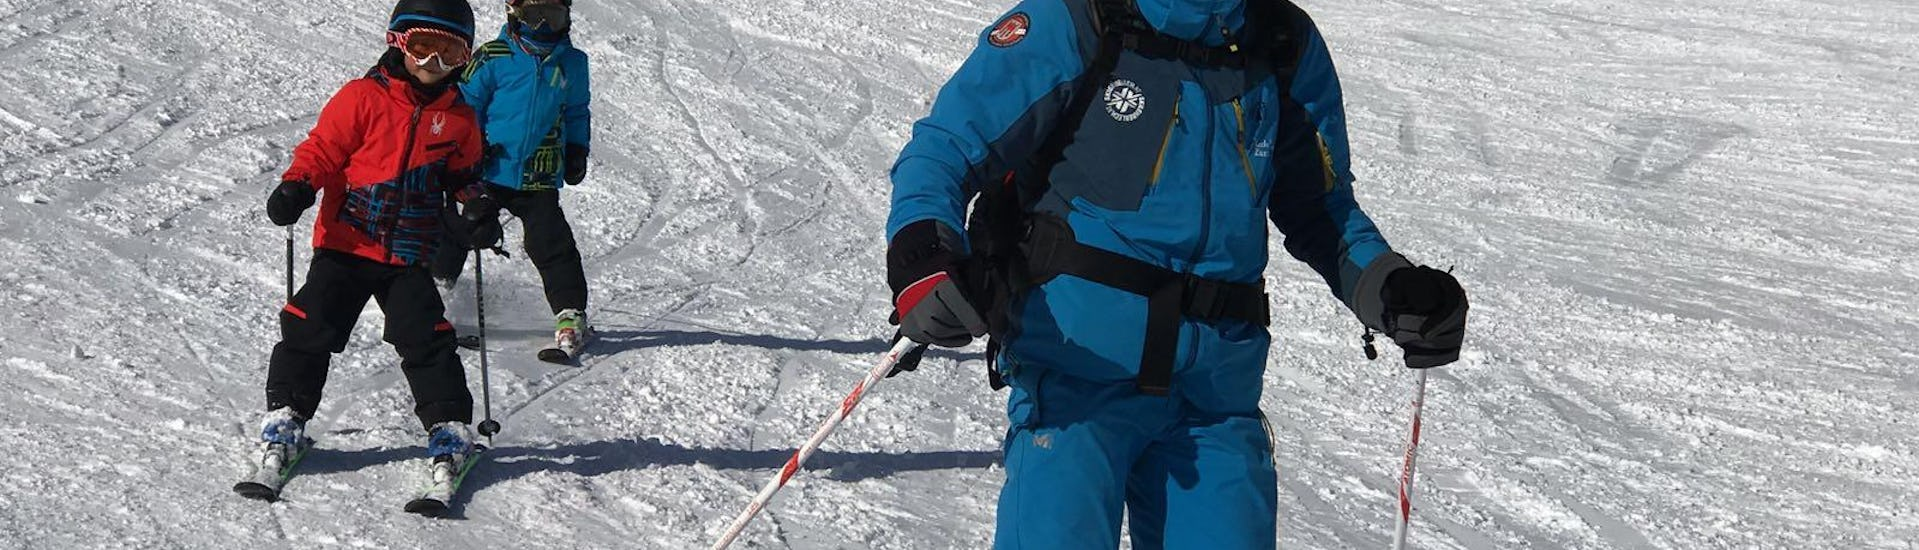 Ski Instructor Private 2h for Kids and Adults